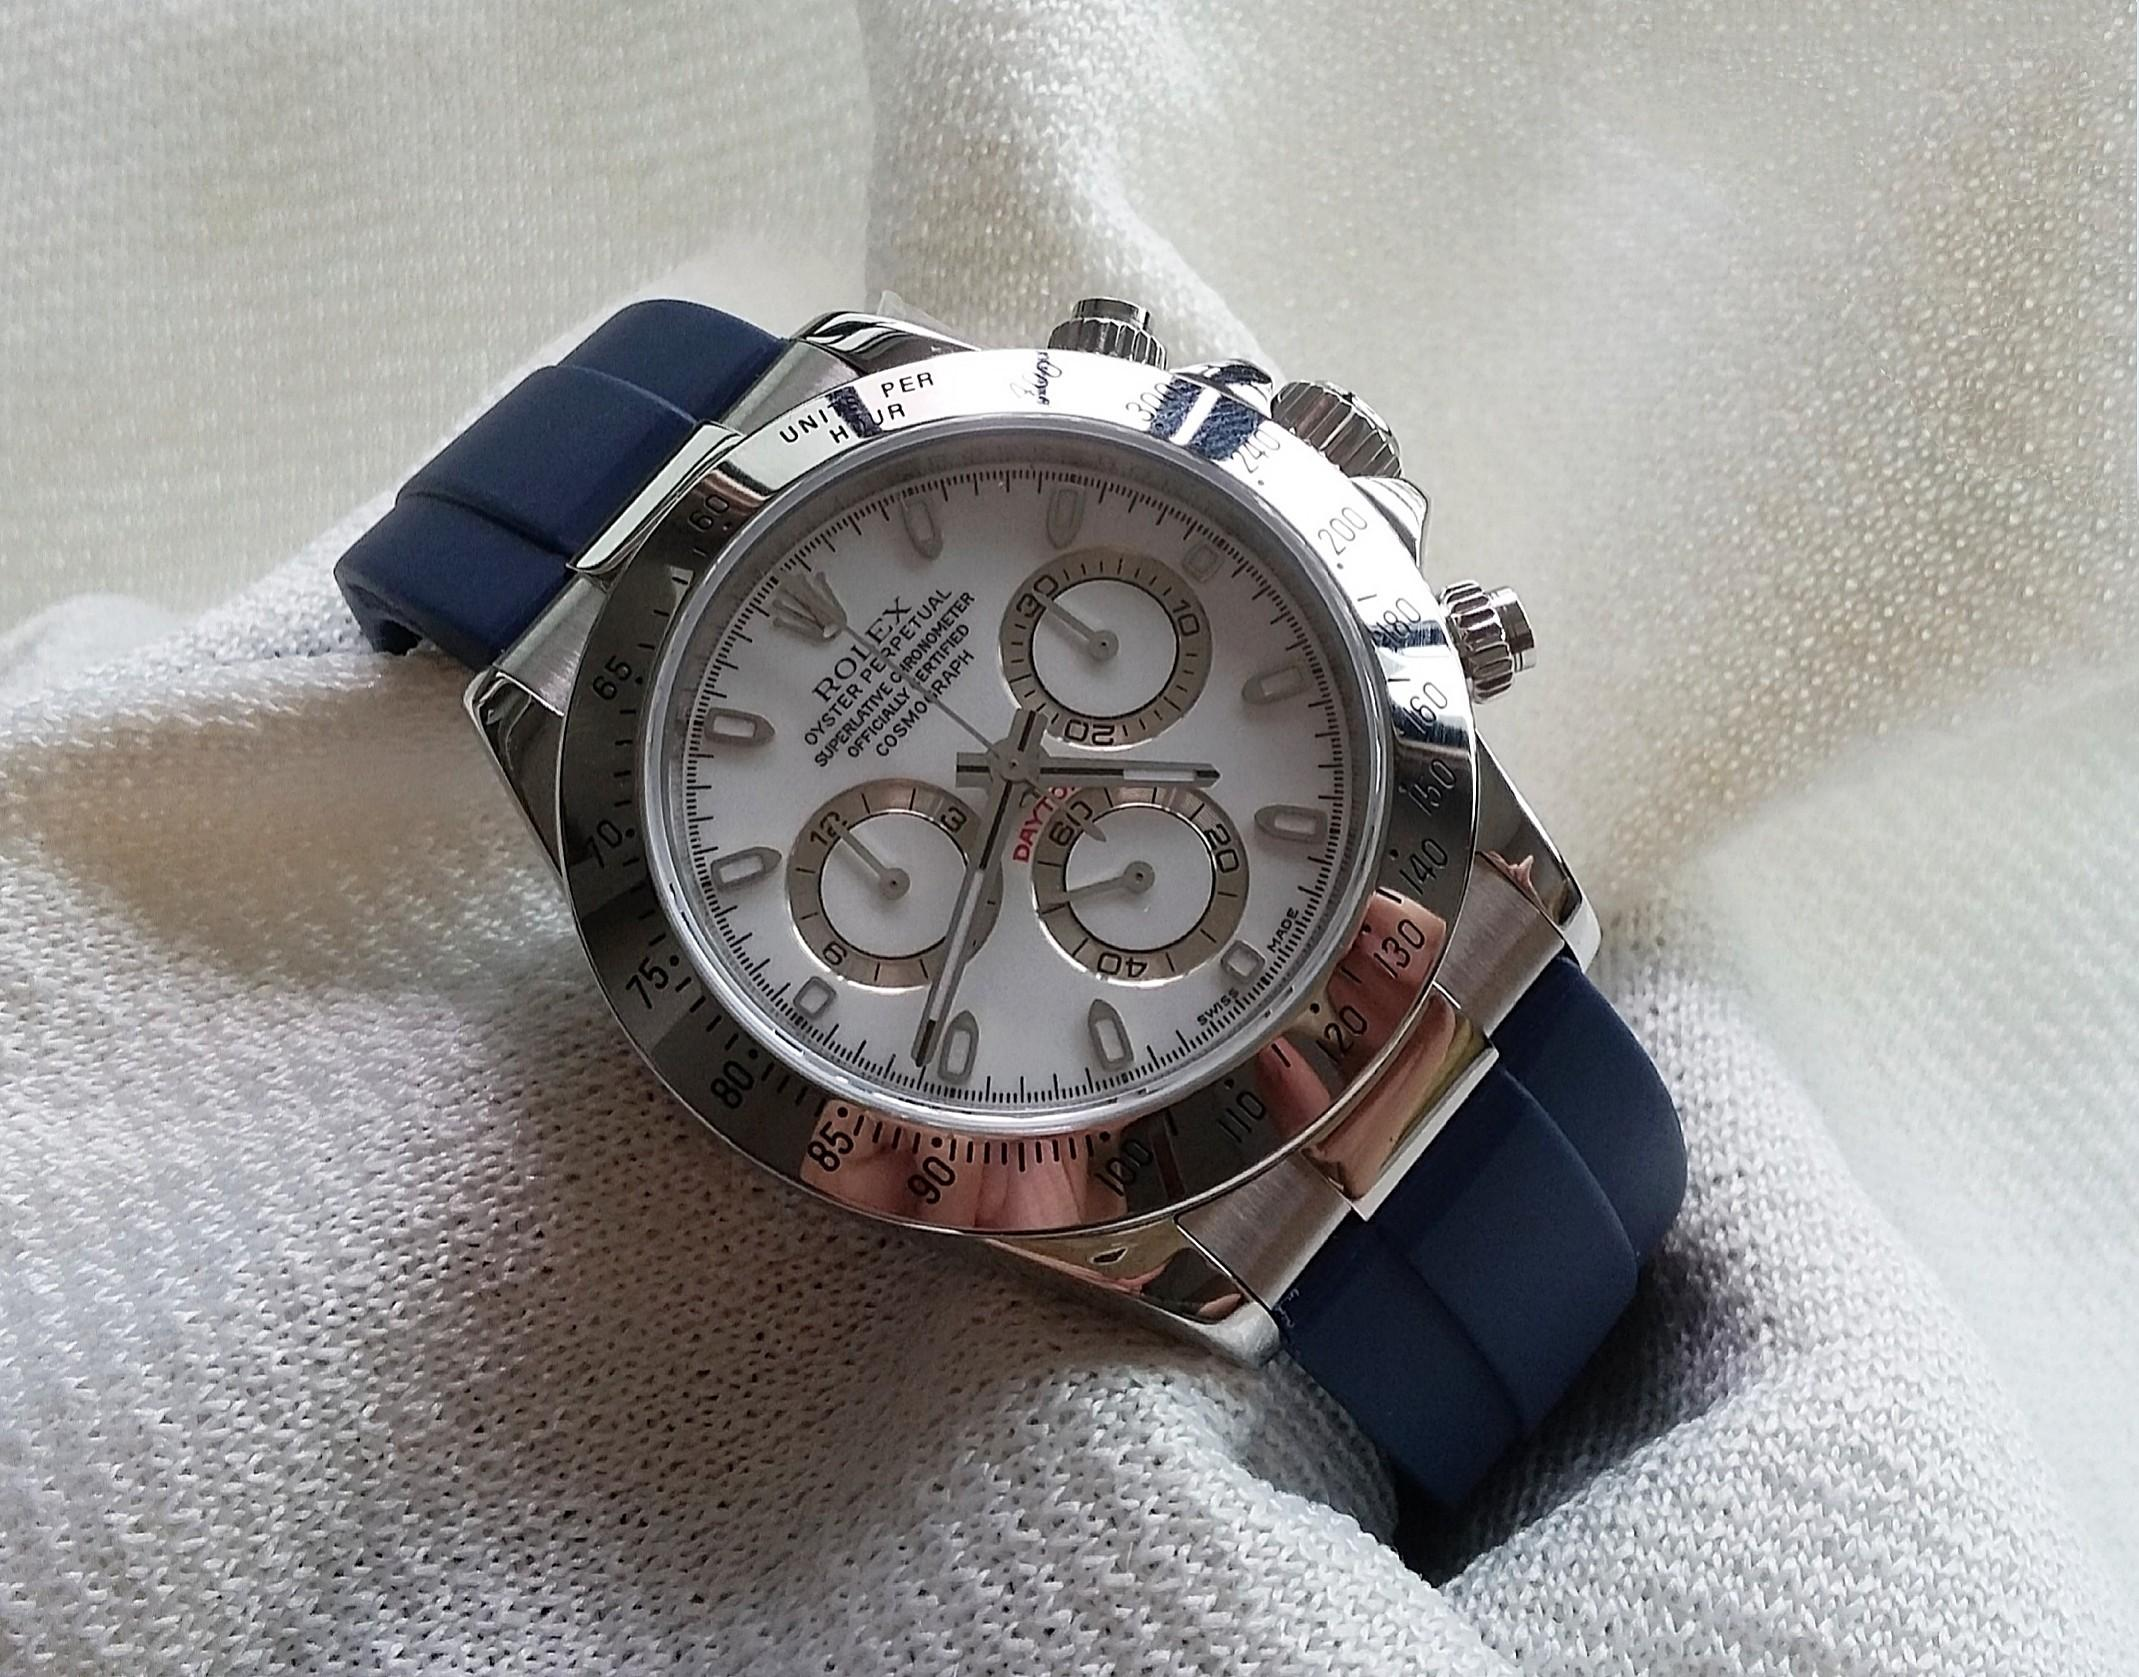 20mm BLUE RUBBER OR LEATHER  STRAP W STAINLESS STEEL ENDLINK & CLASP FIR ROLEX DAYTONA (PRICE INCLUDES FITMENT)